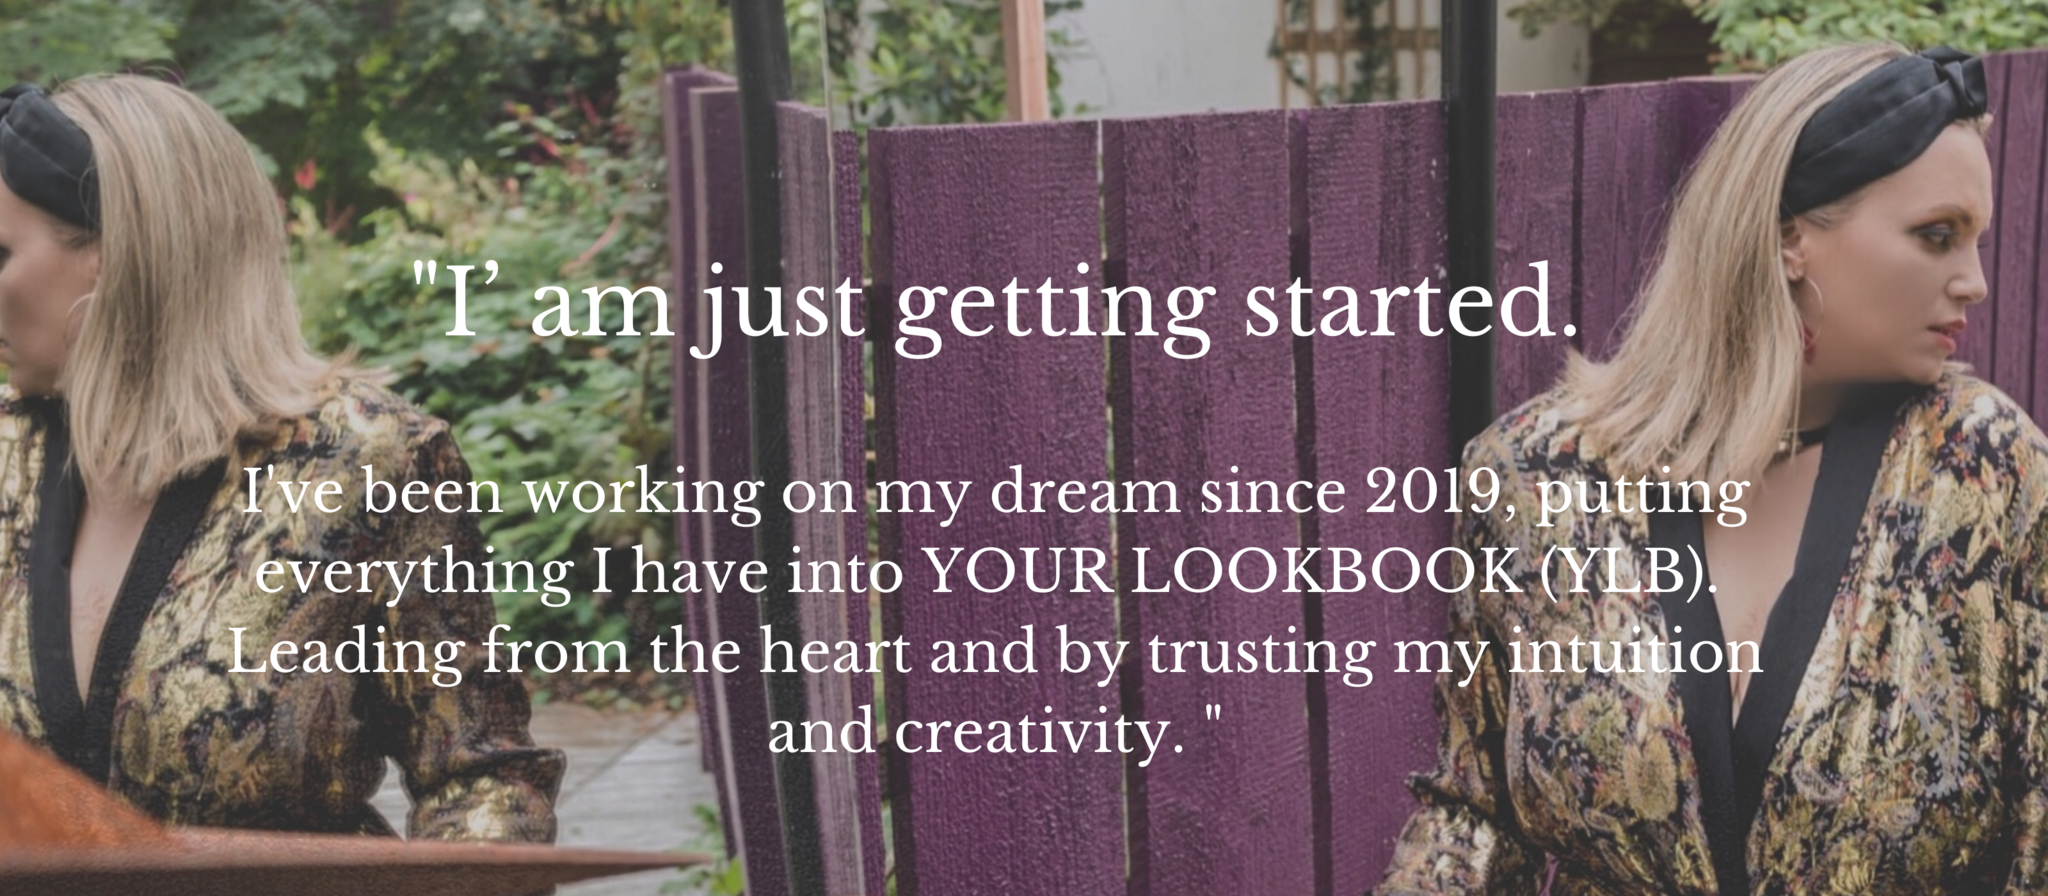 """""""I' am just getting started.  I've been working on my dream since 2019, putting everything I have into YOUR LOOKBOOK (YLB).  Leading from the heart and by trusting my intuition and creativity. """""""